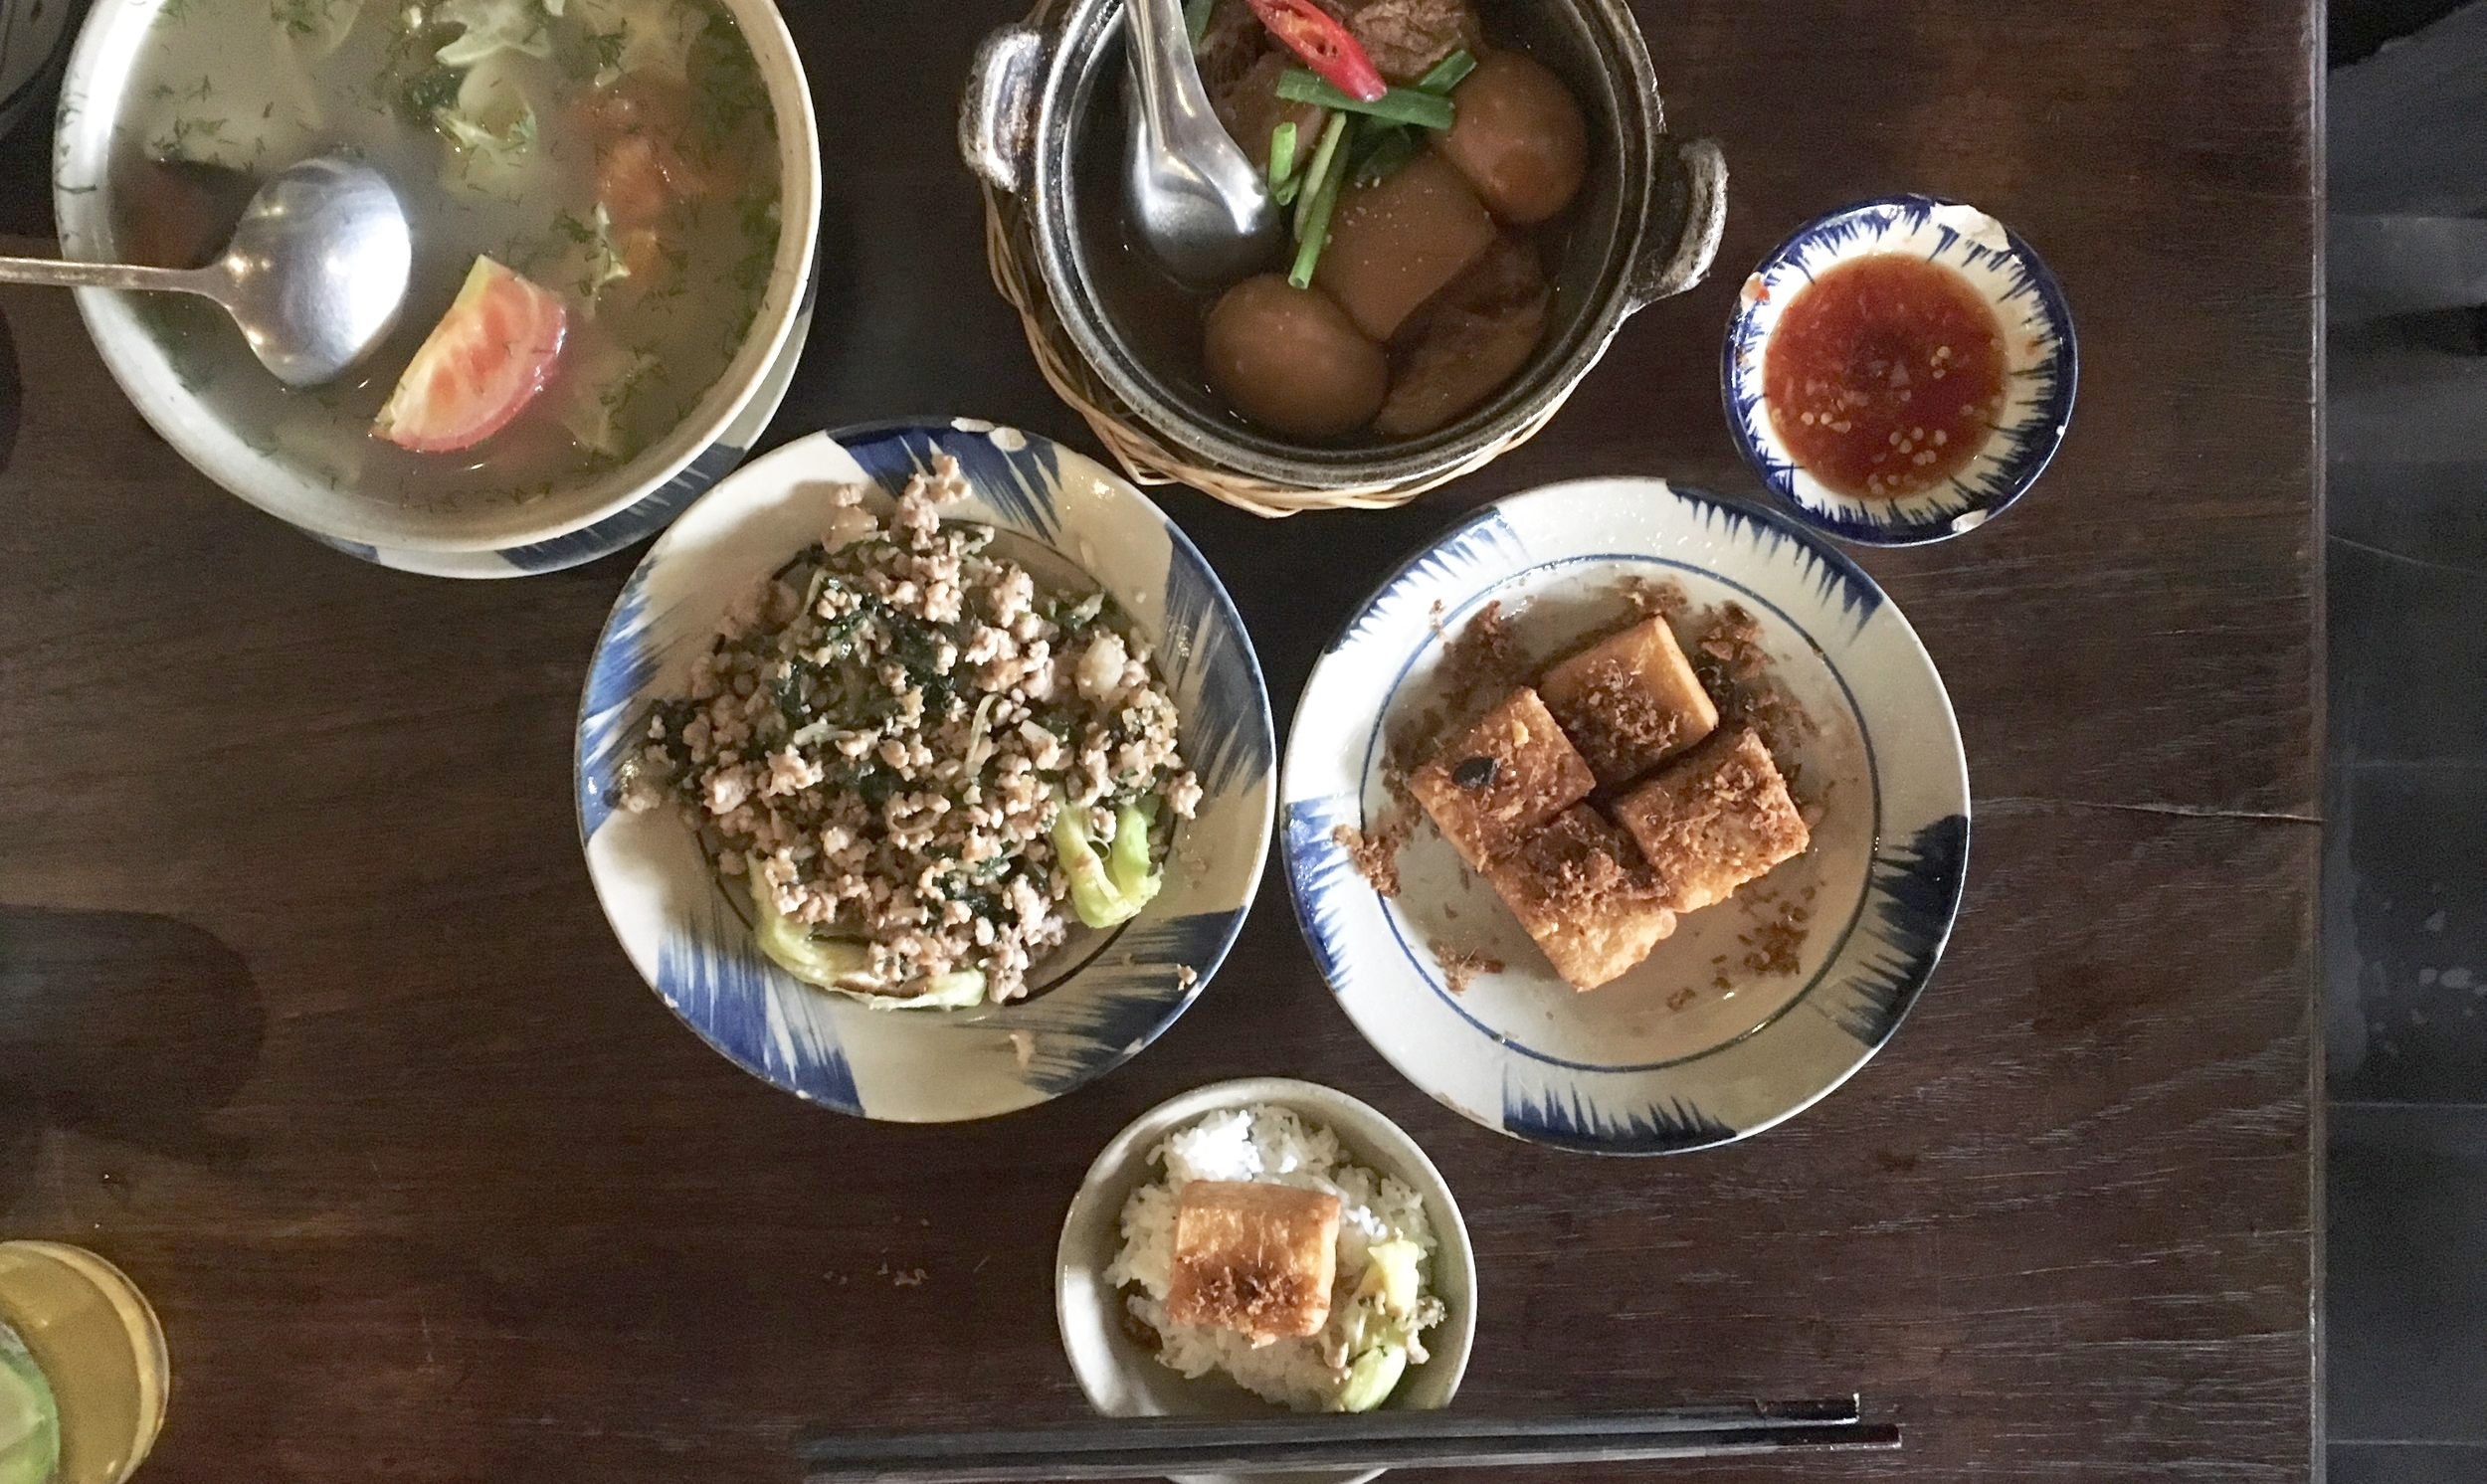 Probably my favourite meal in Ho Chi Minh City and Southern Vietnam.  I never thought I'd say it, but tofu rocks man, so delicious.